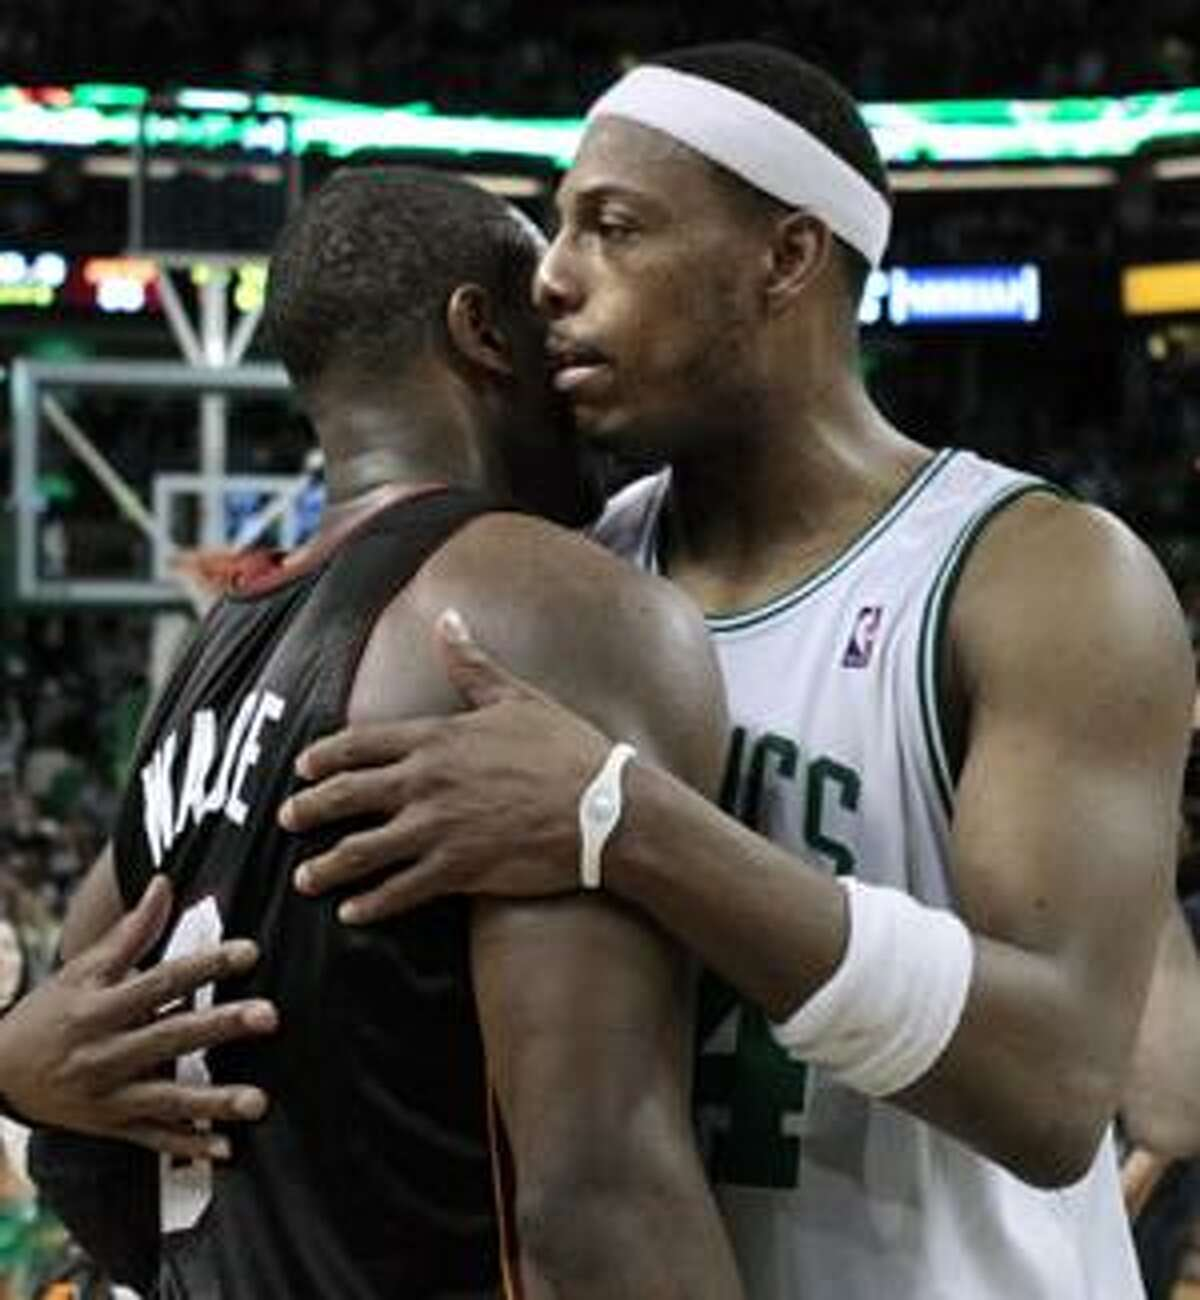 Boston Celtics forward Paul Pierce, right, embraces Miami Heat guard Dwyane Wade after the Celtics' 96-86 victory in Game 5 to win the first-round NBA basketball series, in Boston on Tuesday, April 27, 2010. (AP Photo/Elise Amendola)